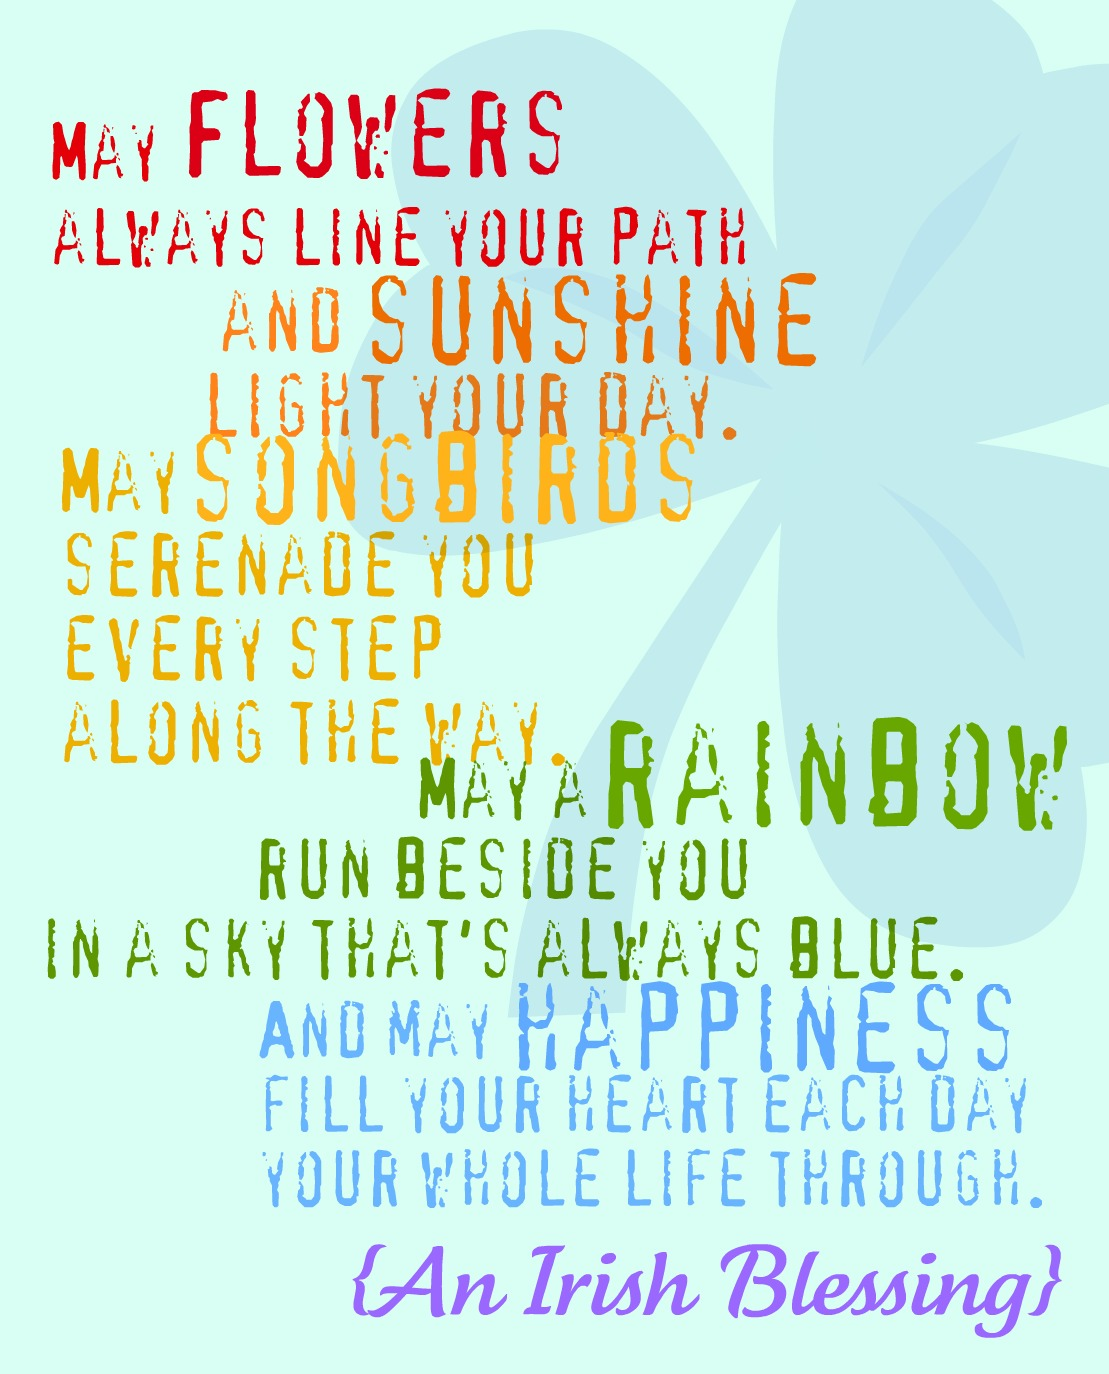 An Irish Blessing - Free Printable - Rainbow and Aqua